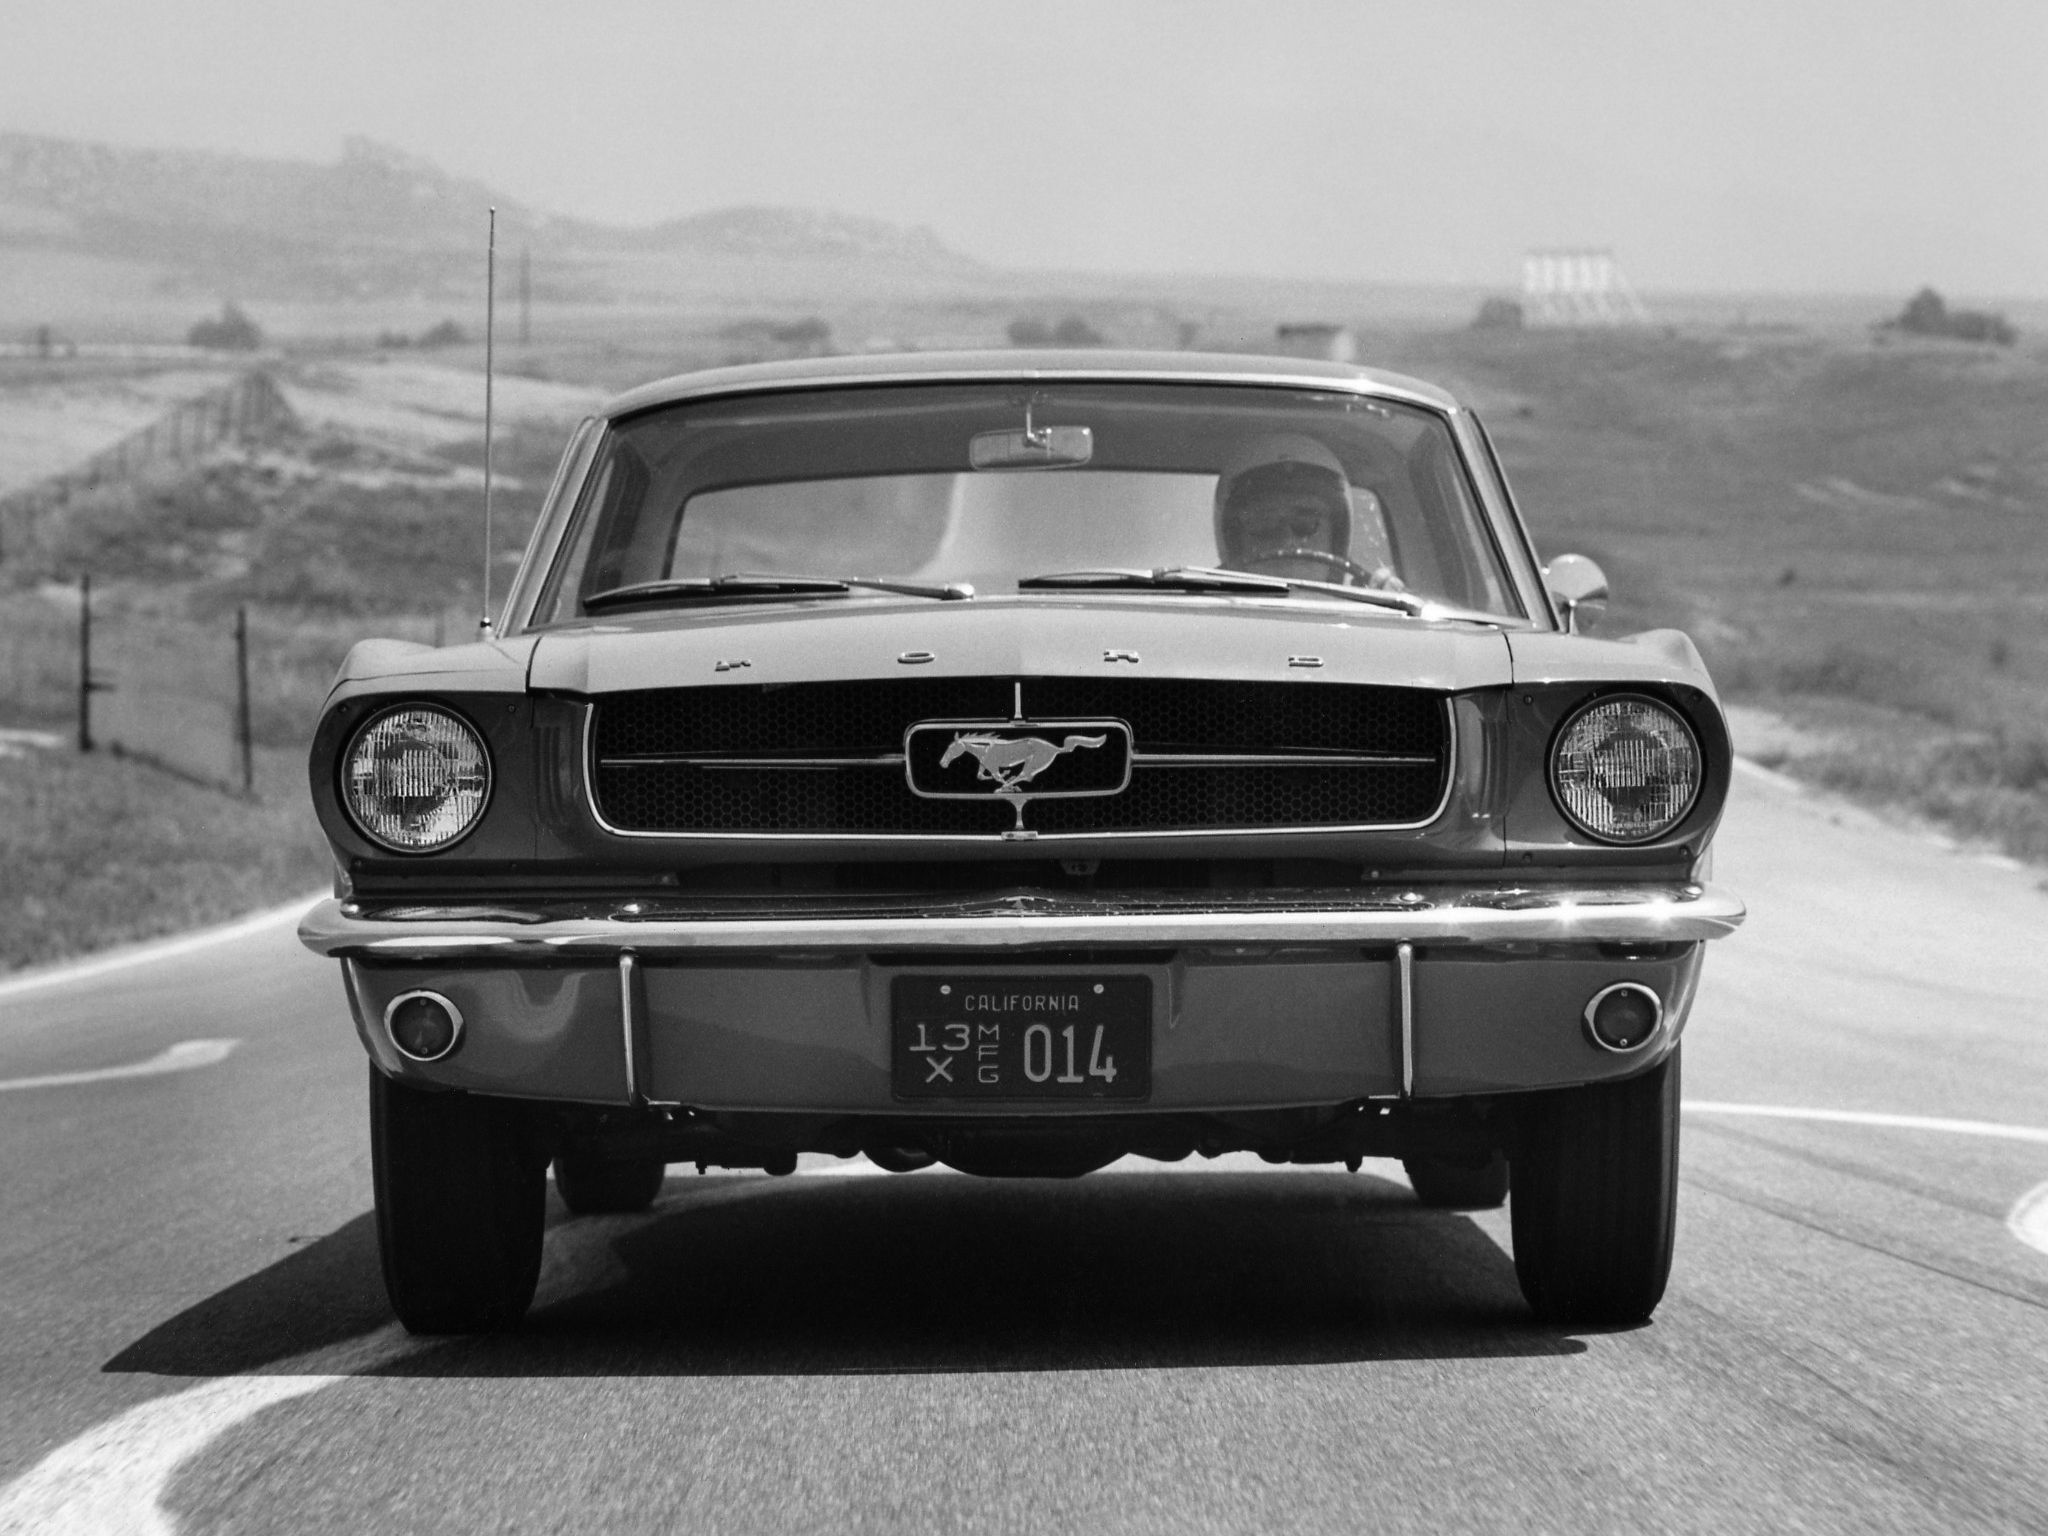 Ford Vintage Mustang Hd Wallpapers With Images Ford Mustang